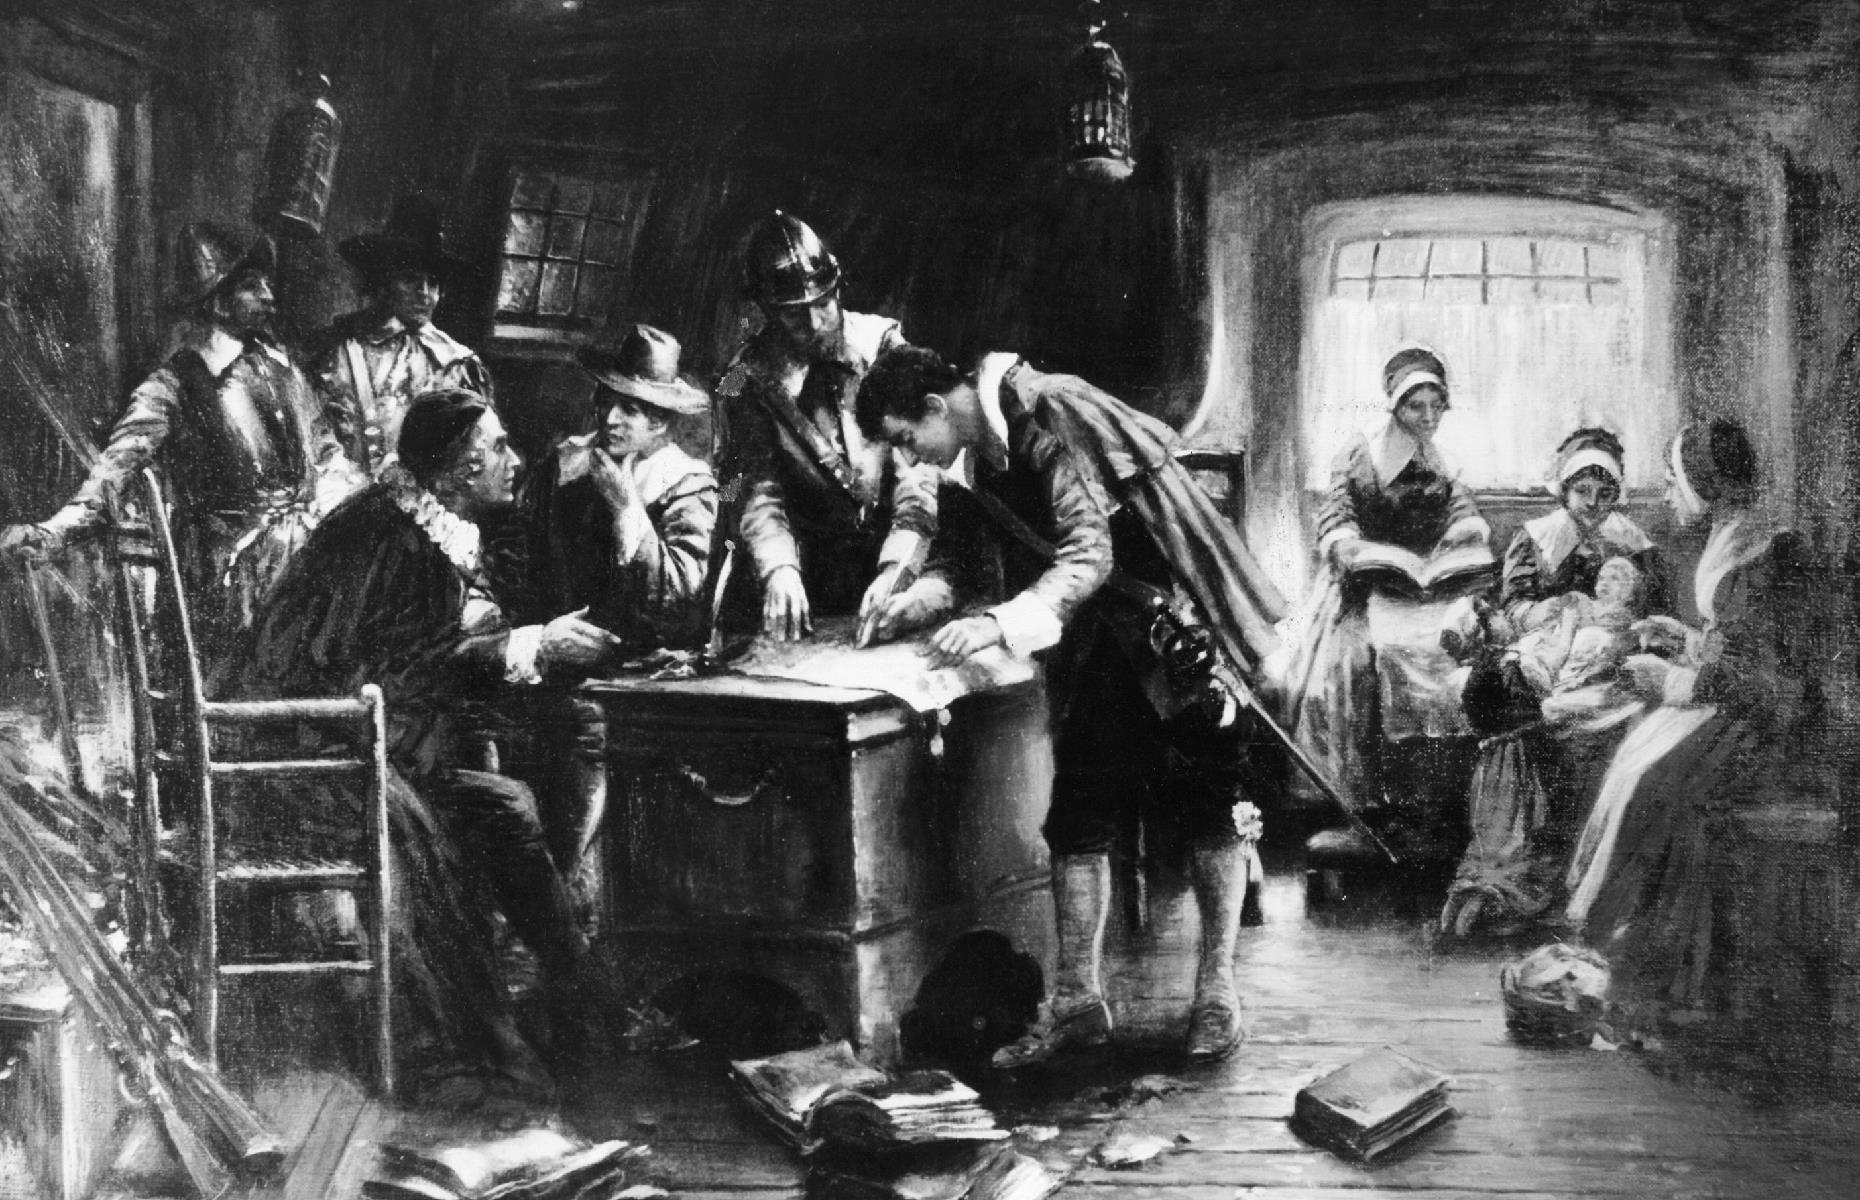 "Slide 14 of 23: The Mayflower Compact was signed by 41 men, as depicted here, who stated their intentions ""to plant the first colony in the Northerne parts of Virginia"" for ""the glory of God, and advancement of the Christian faith"". The Pilgrims also promised to act under ""civill body politick, for our better ordering and preservation"". Once the document was signed, the colonists began to explore the land they'd arrived upon."